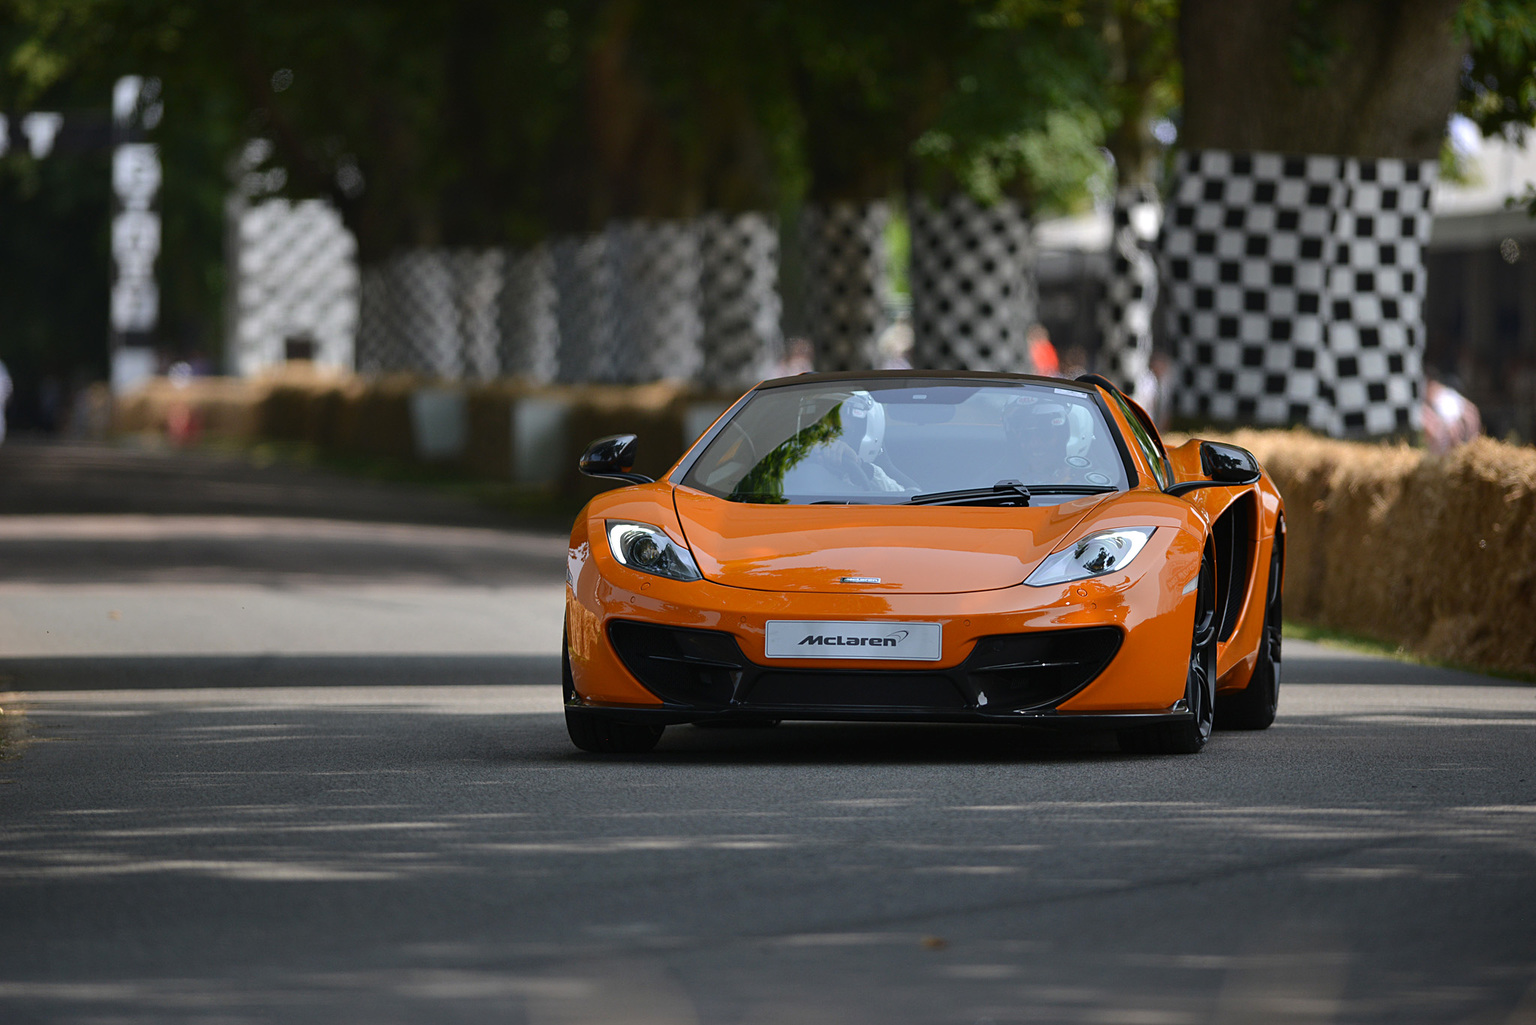 2013 McLaren 50 MP4-12C Spider Gallery